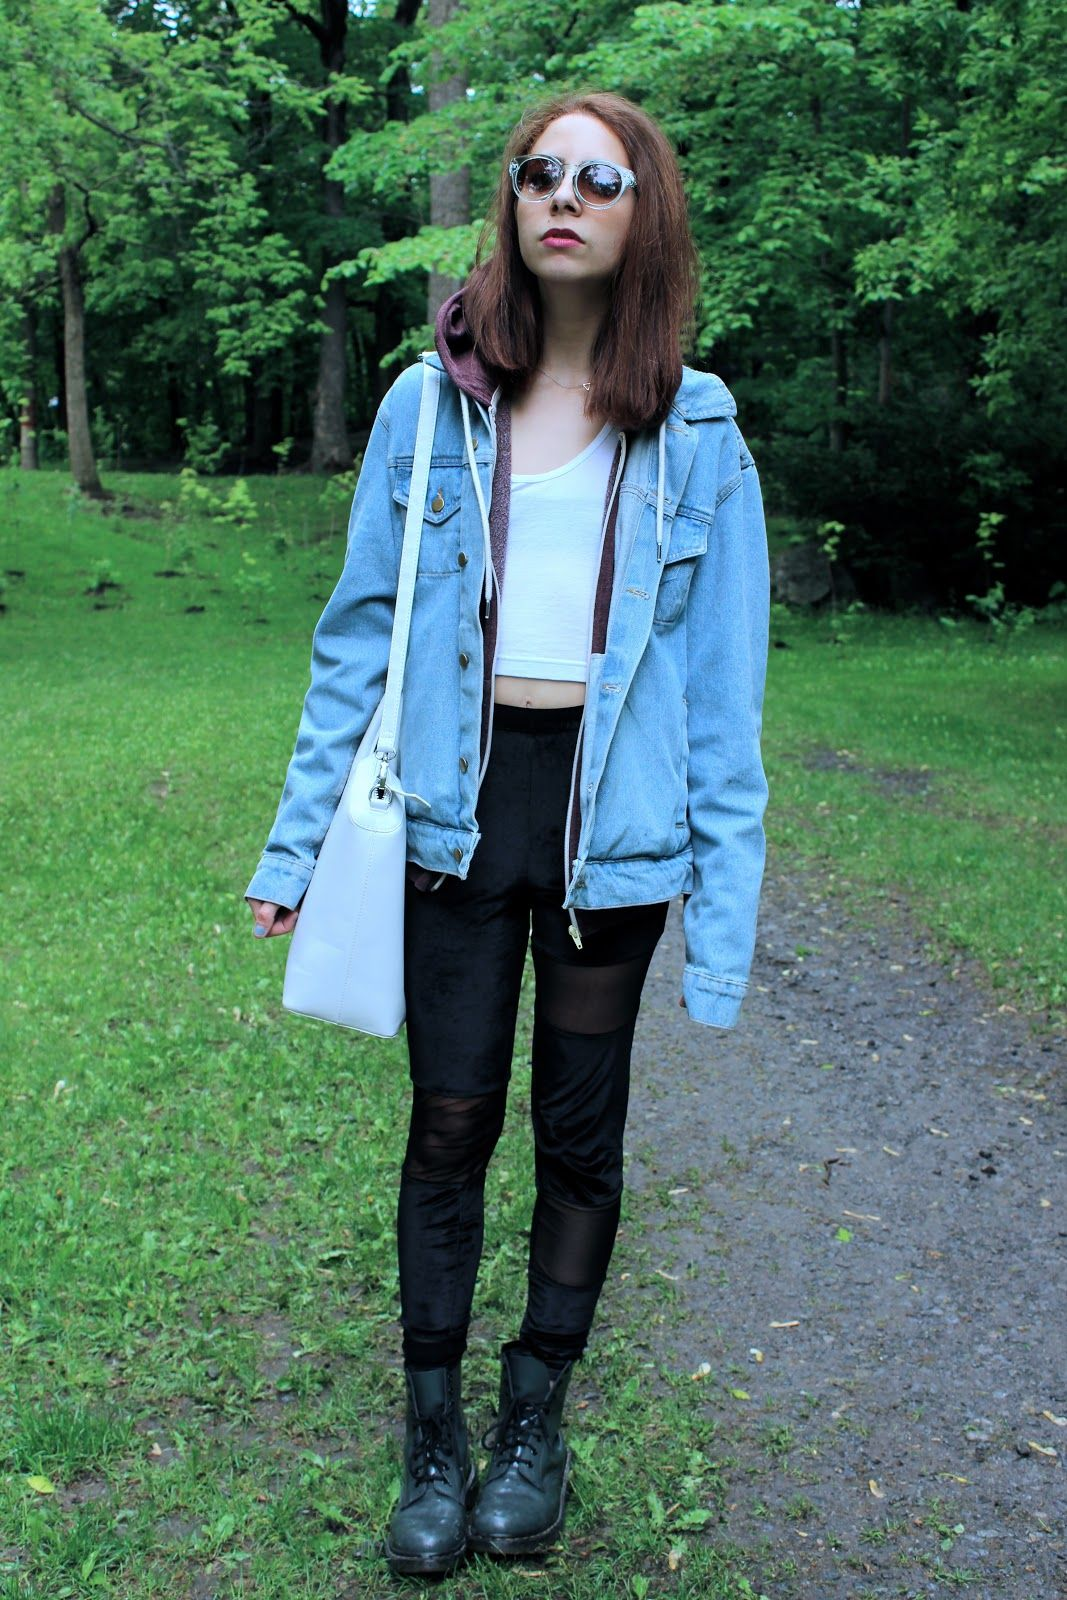 jean jacket hoodie outfits - Google Search | Hipsters | Pinterest ...